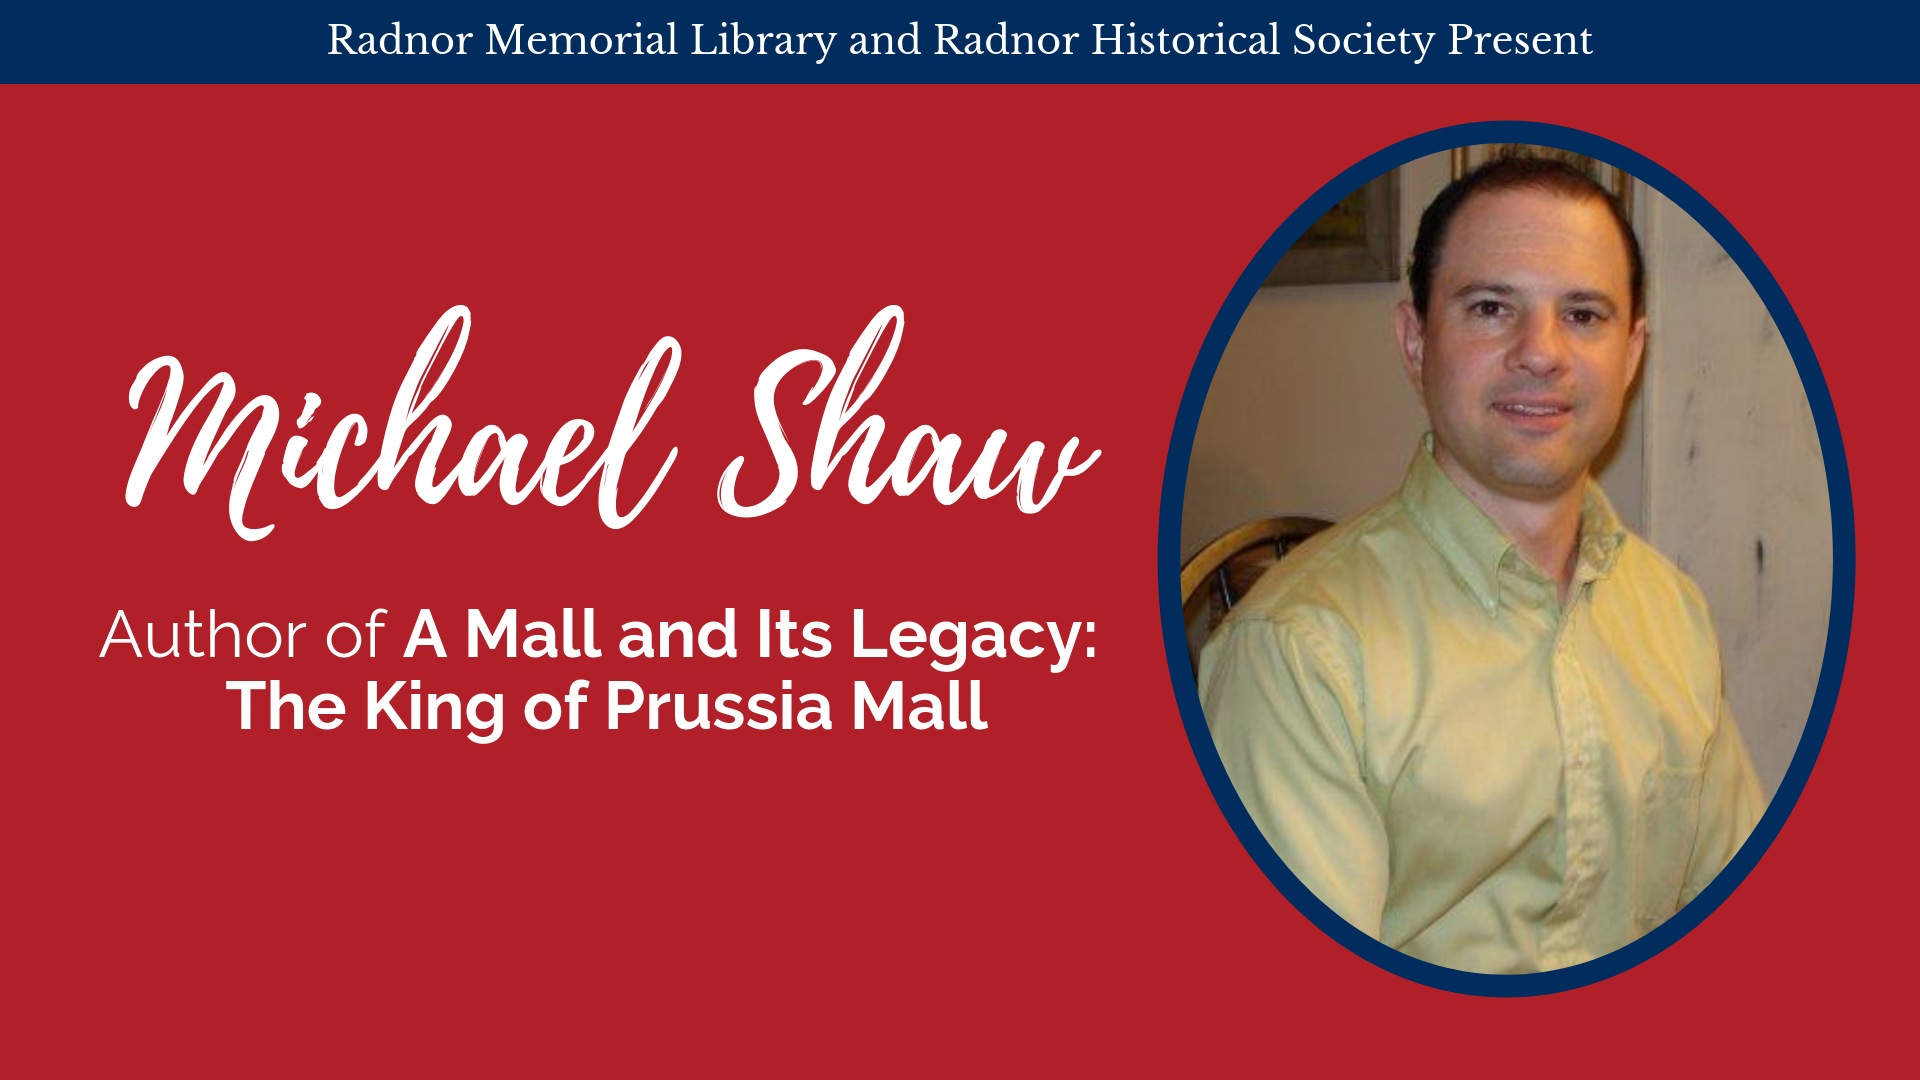 Michael Shaw, author of A Mall and Its Legacy: The King of Prussia Mall